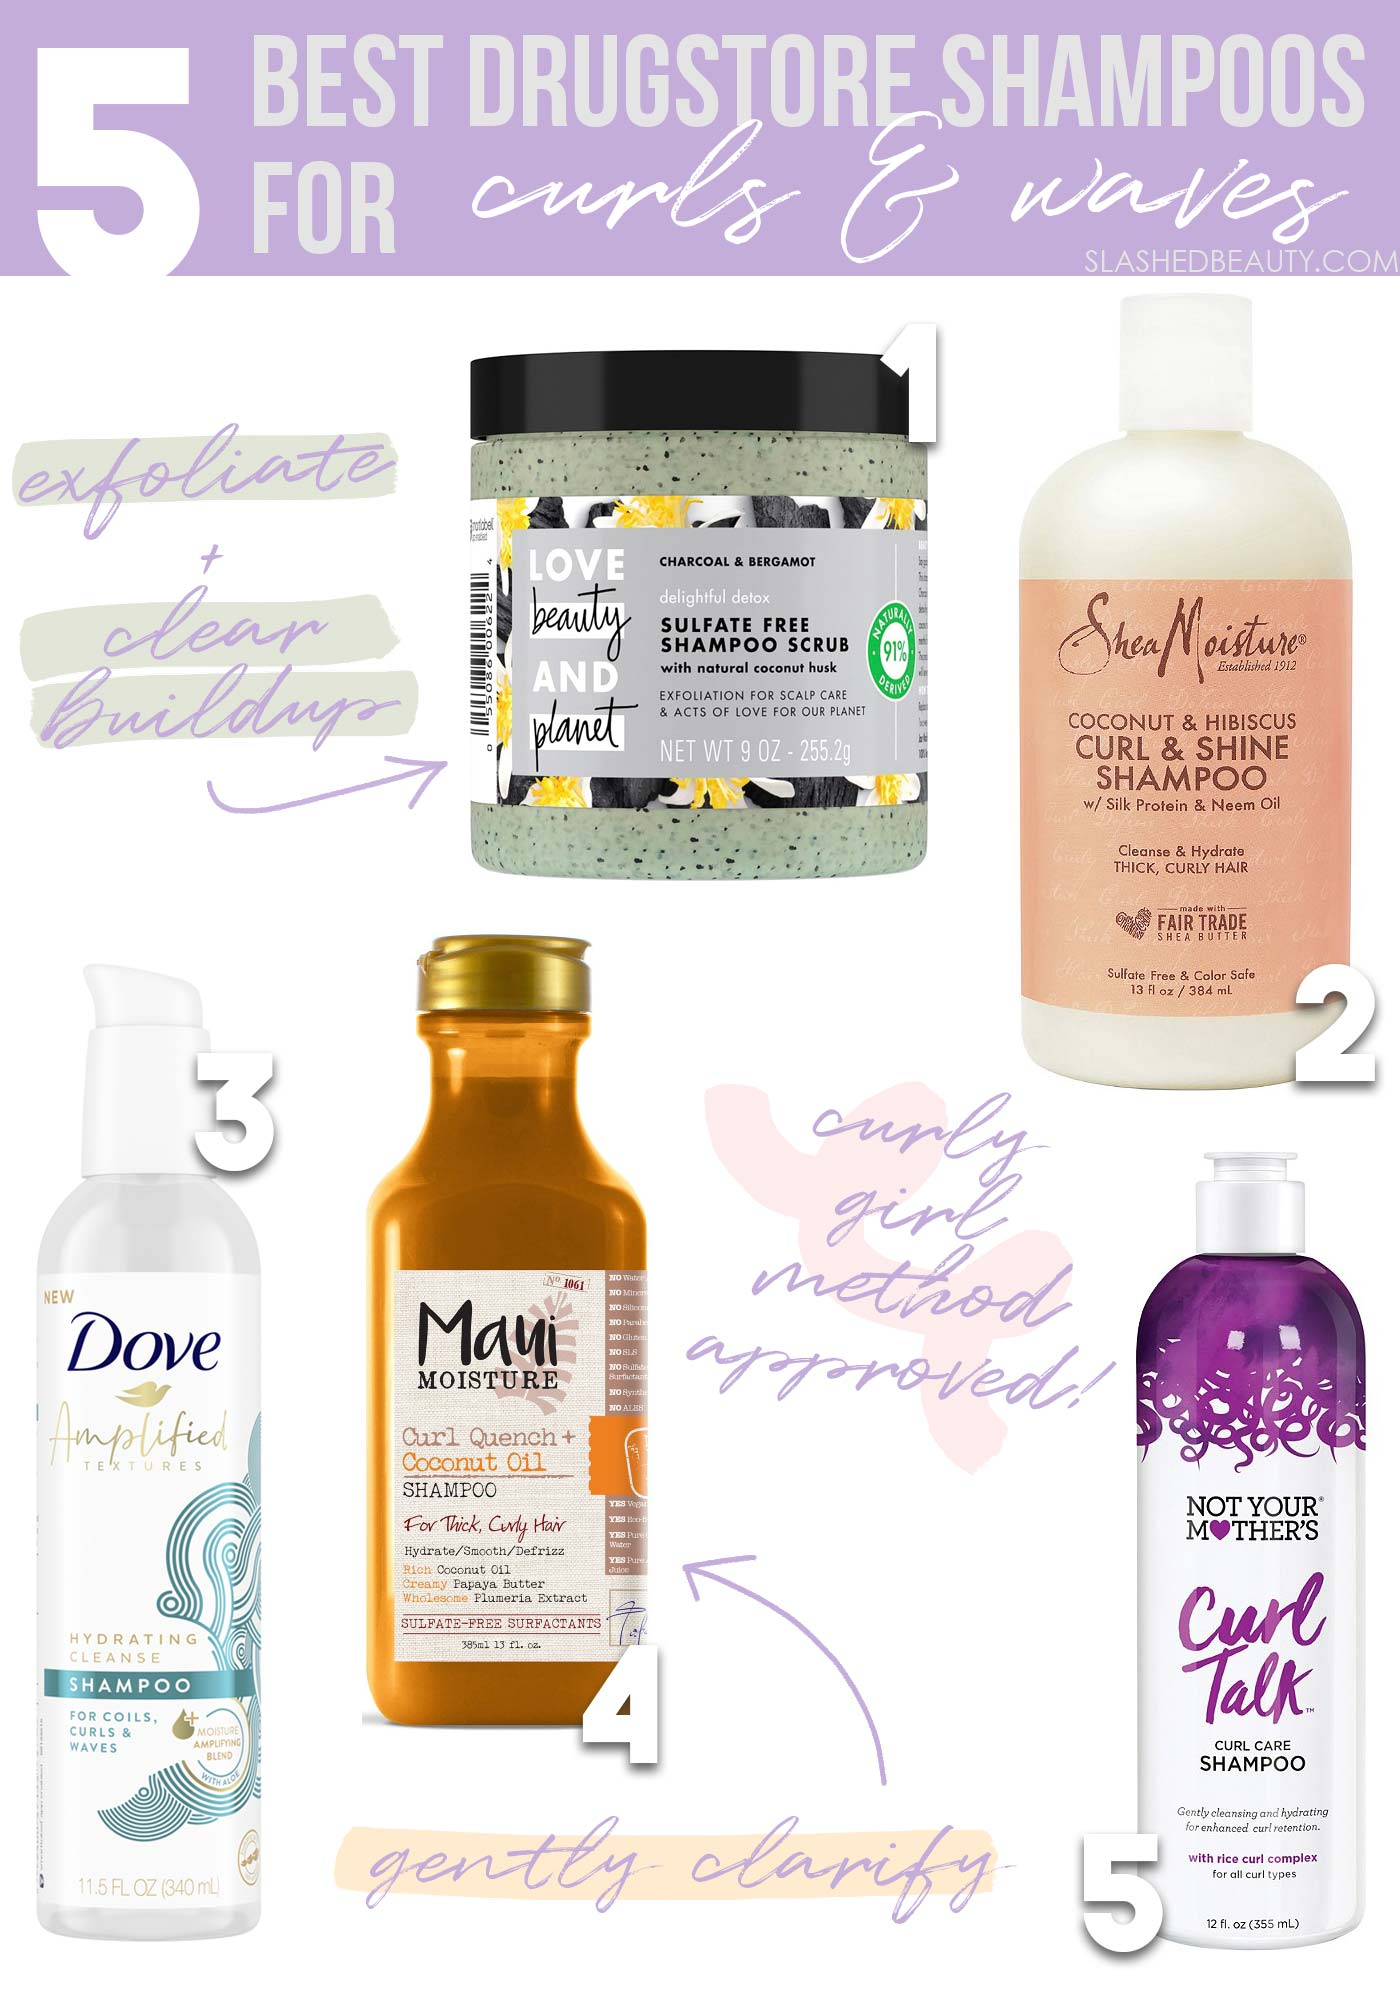 15 Best Drugstore Shampoos for Curly & Wavy Hair   Slashed Beauty